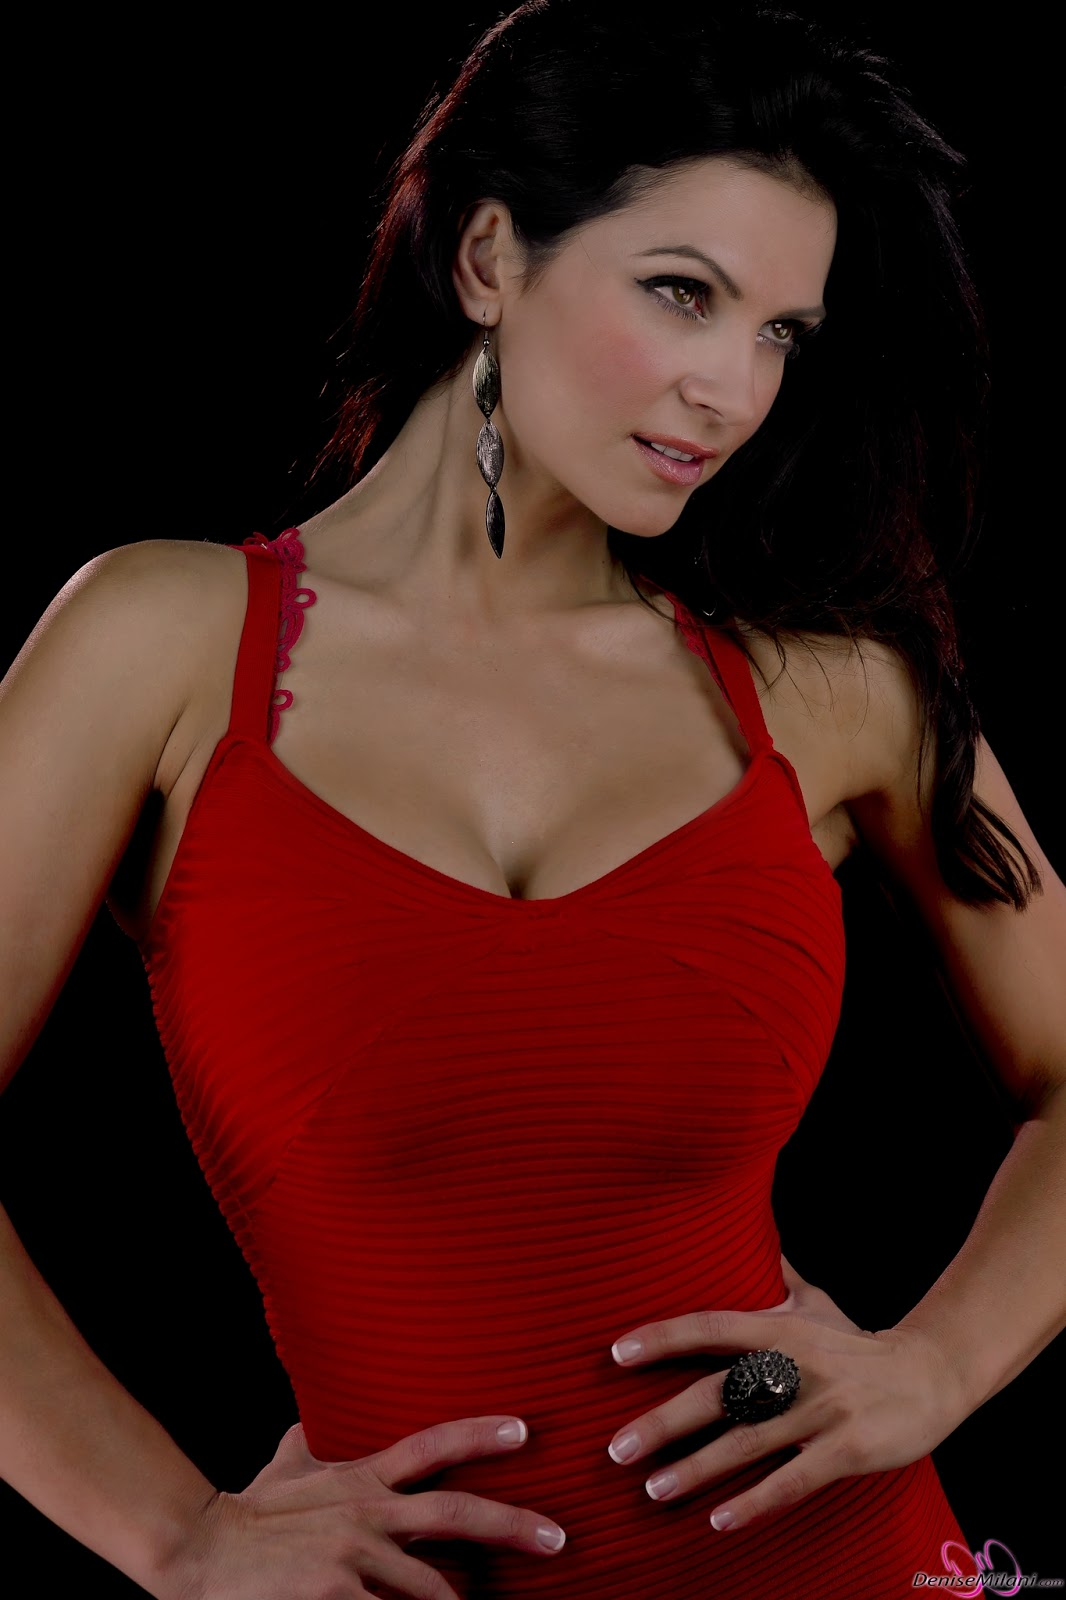 meet and fuck denise milani   free games   gamcore